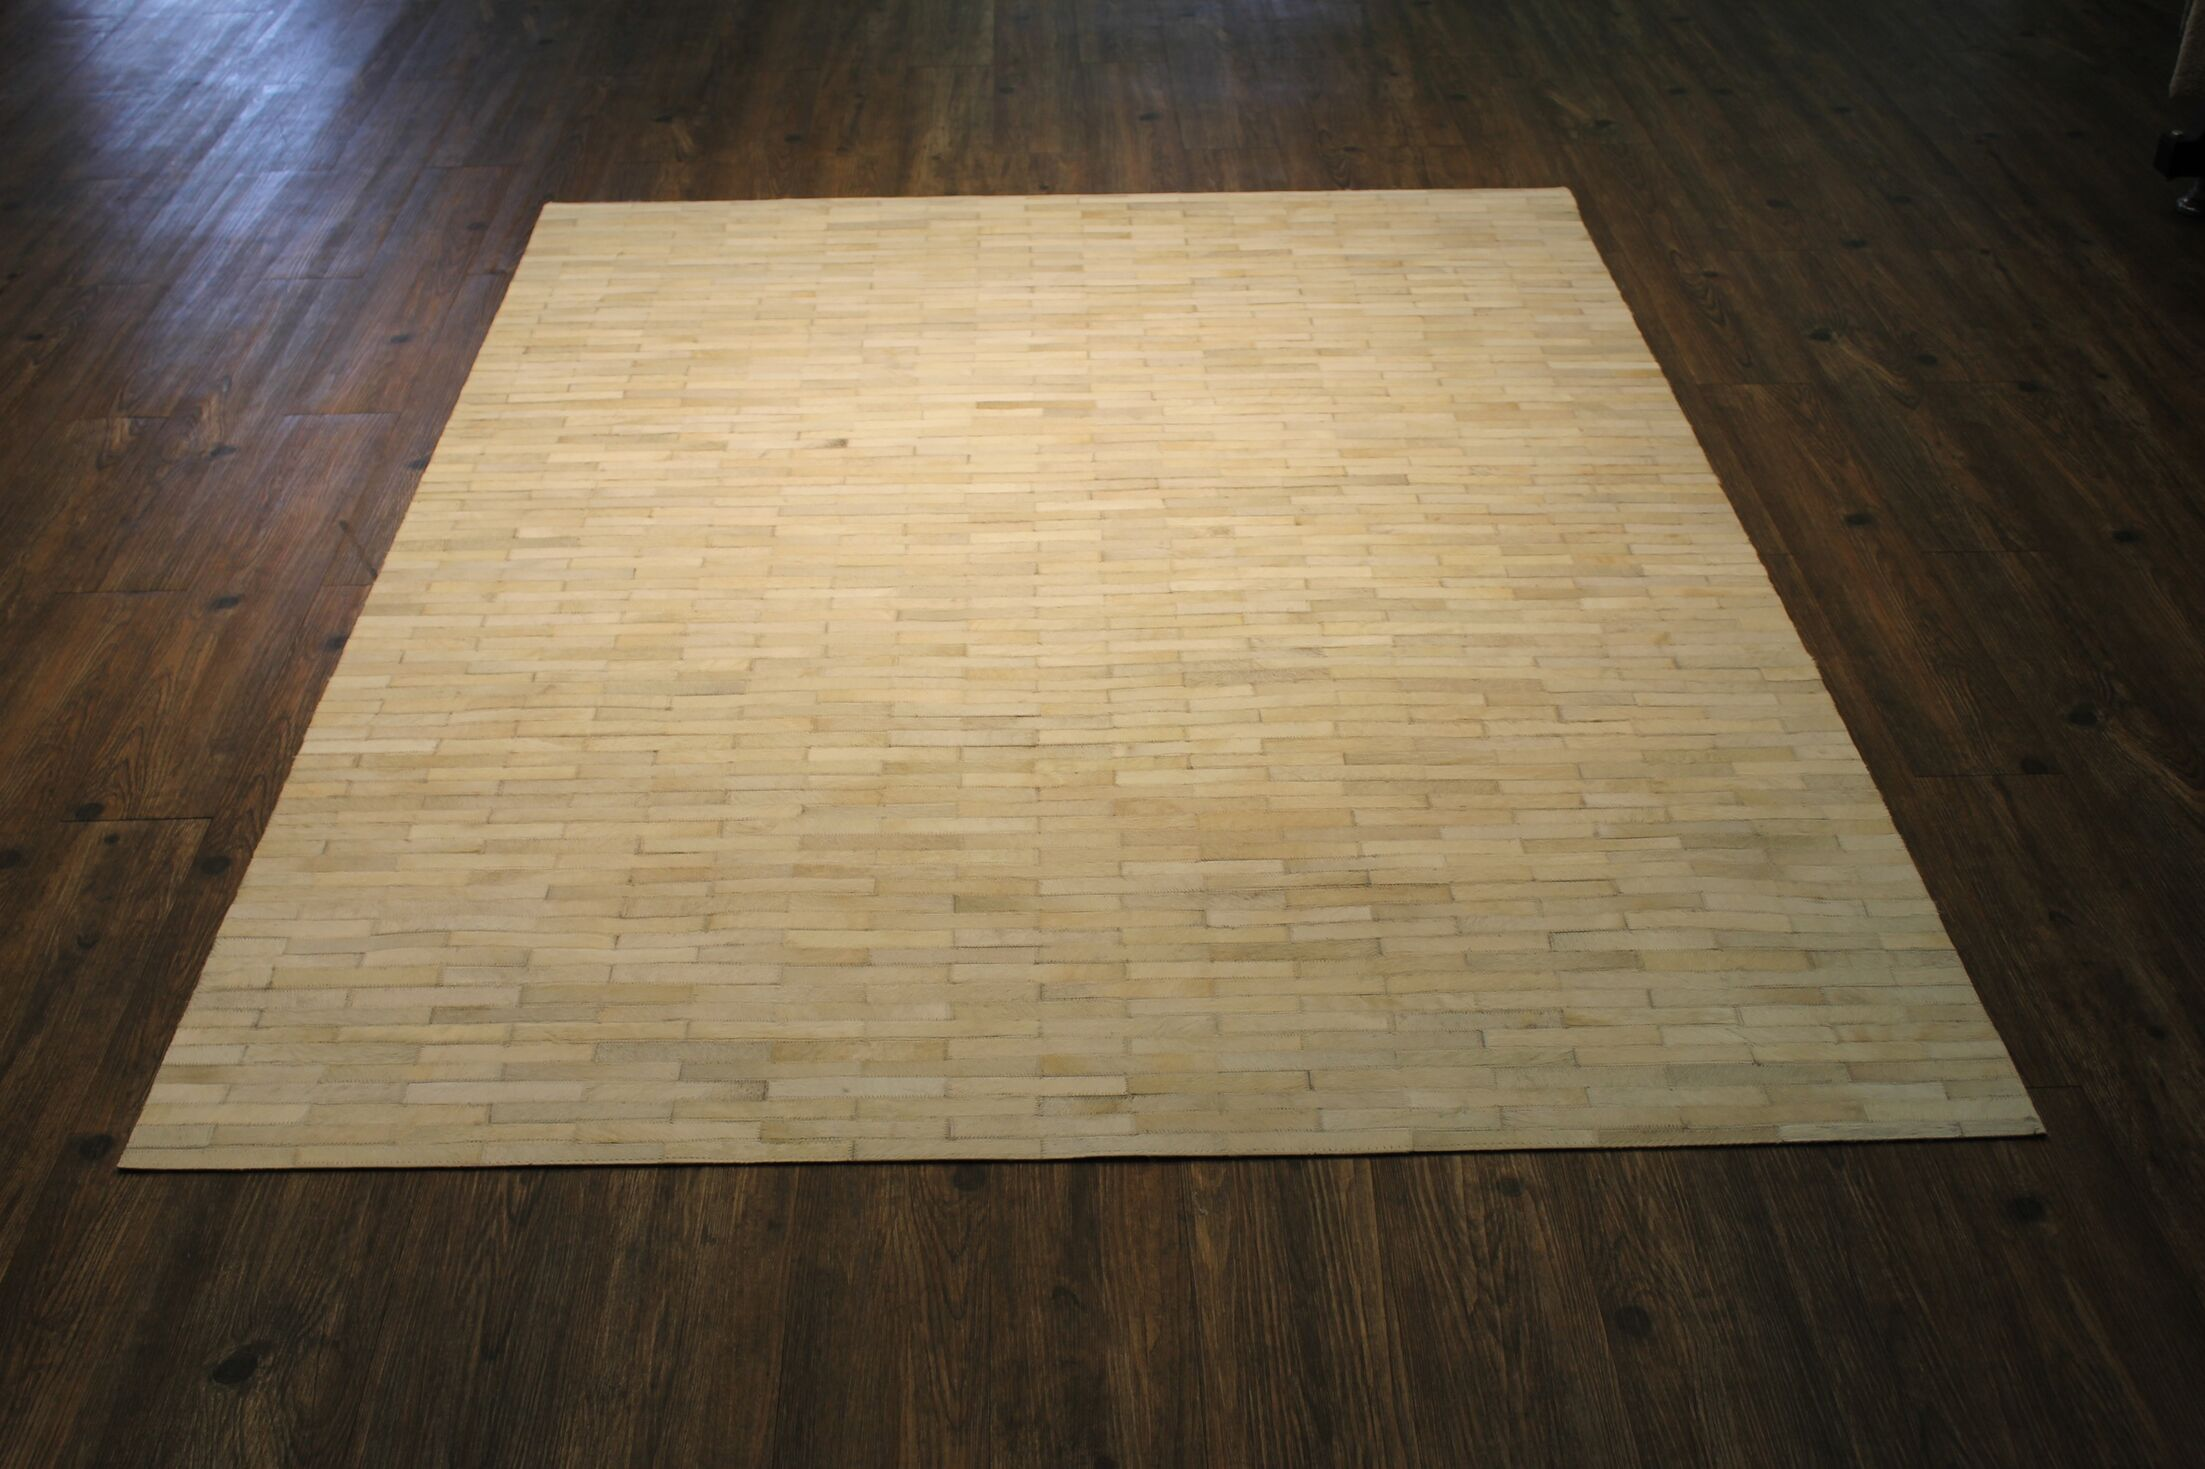 Petrick Handwoven Beige Area Rug Rug Size: Rectangle 5' x 7'